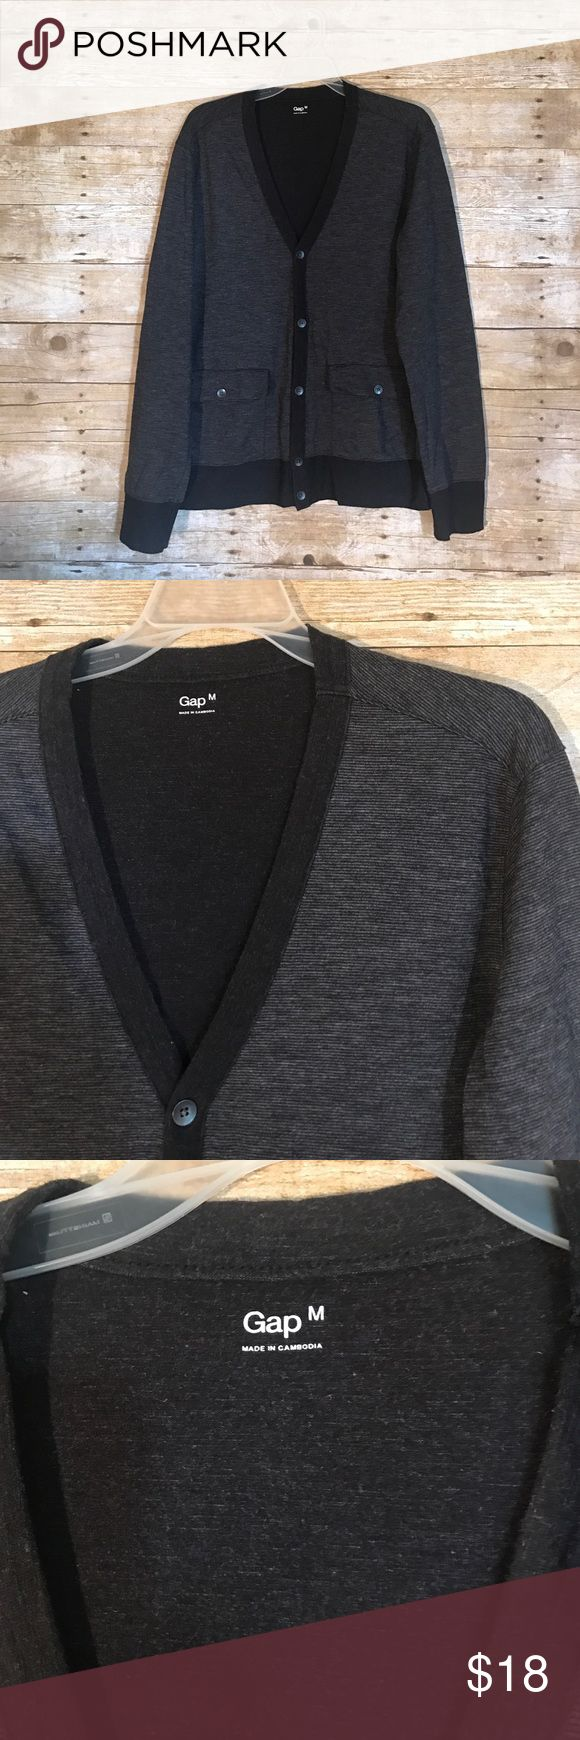 GAP Men's cardigan sweater size M gray/black GAP - Men's sweater cardigan - size M - gray/black striped pattern with brass dark buttons - long sleeve lightweight sweater - dress up or down - ‼️FAST SHIPPING‼️ GAP Sweaters Cardigan